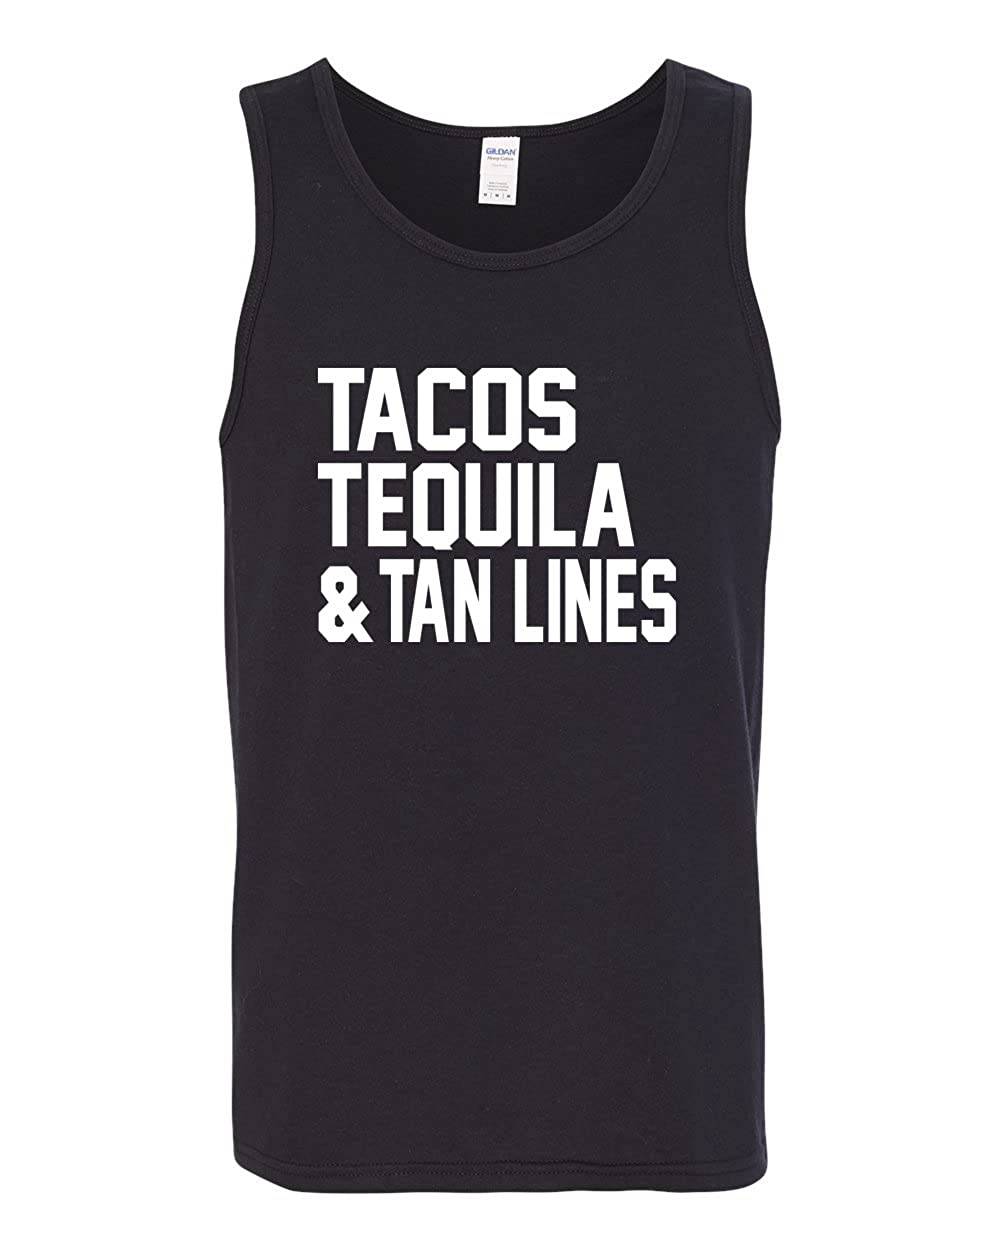 Wild Bobby Tacos Tequila /& Tan Lines Mens Pop Culture Fashion Graphic Tank Top